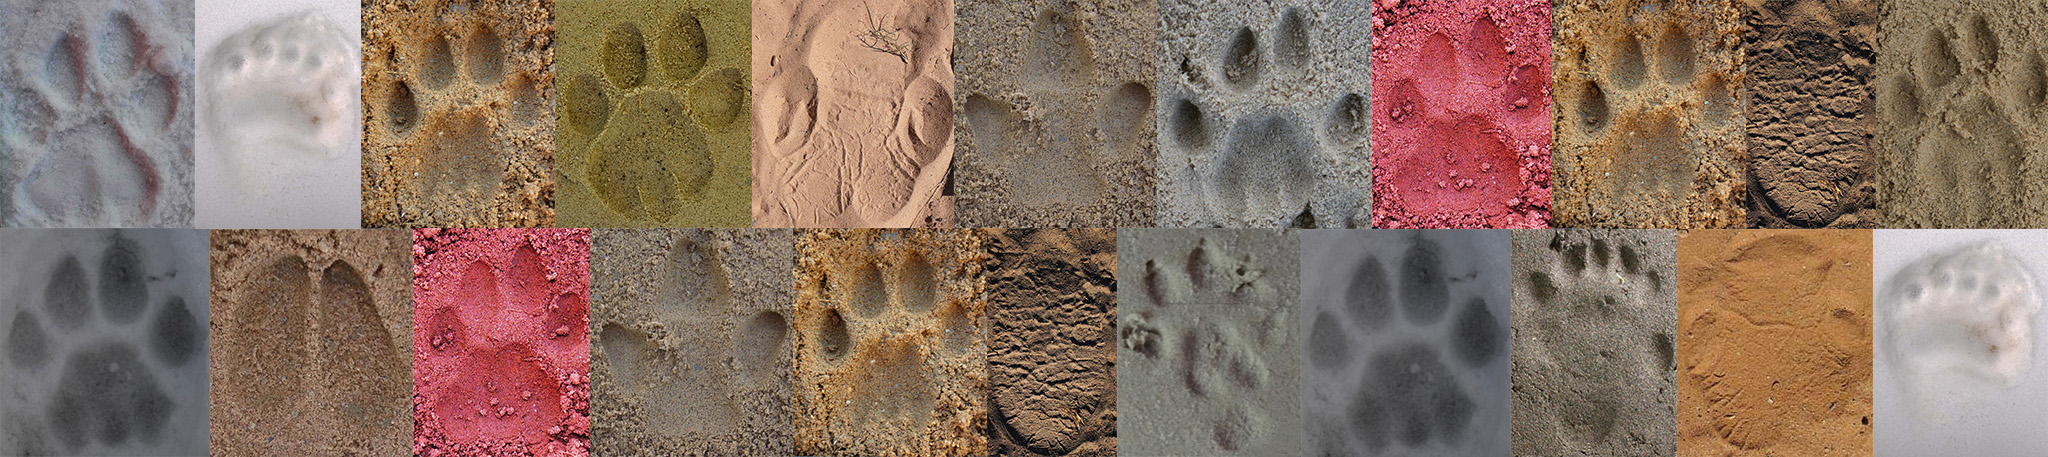 Translating footprints into wildlife monitoring data